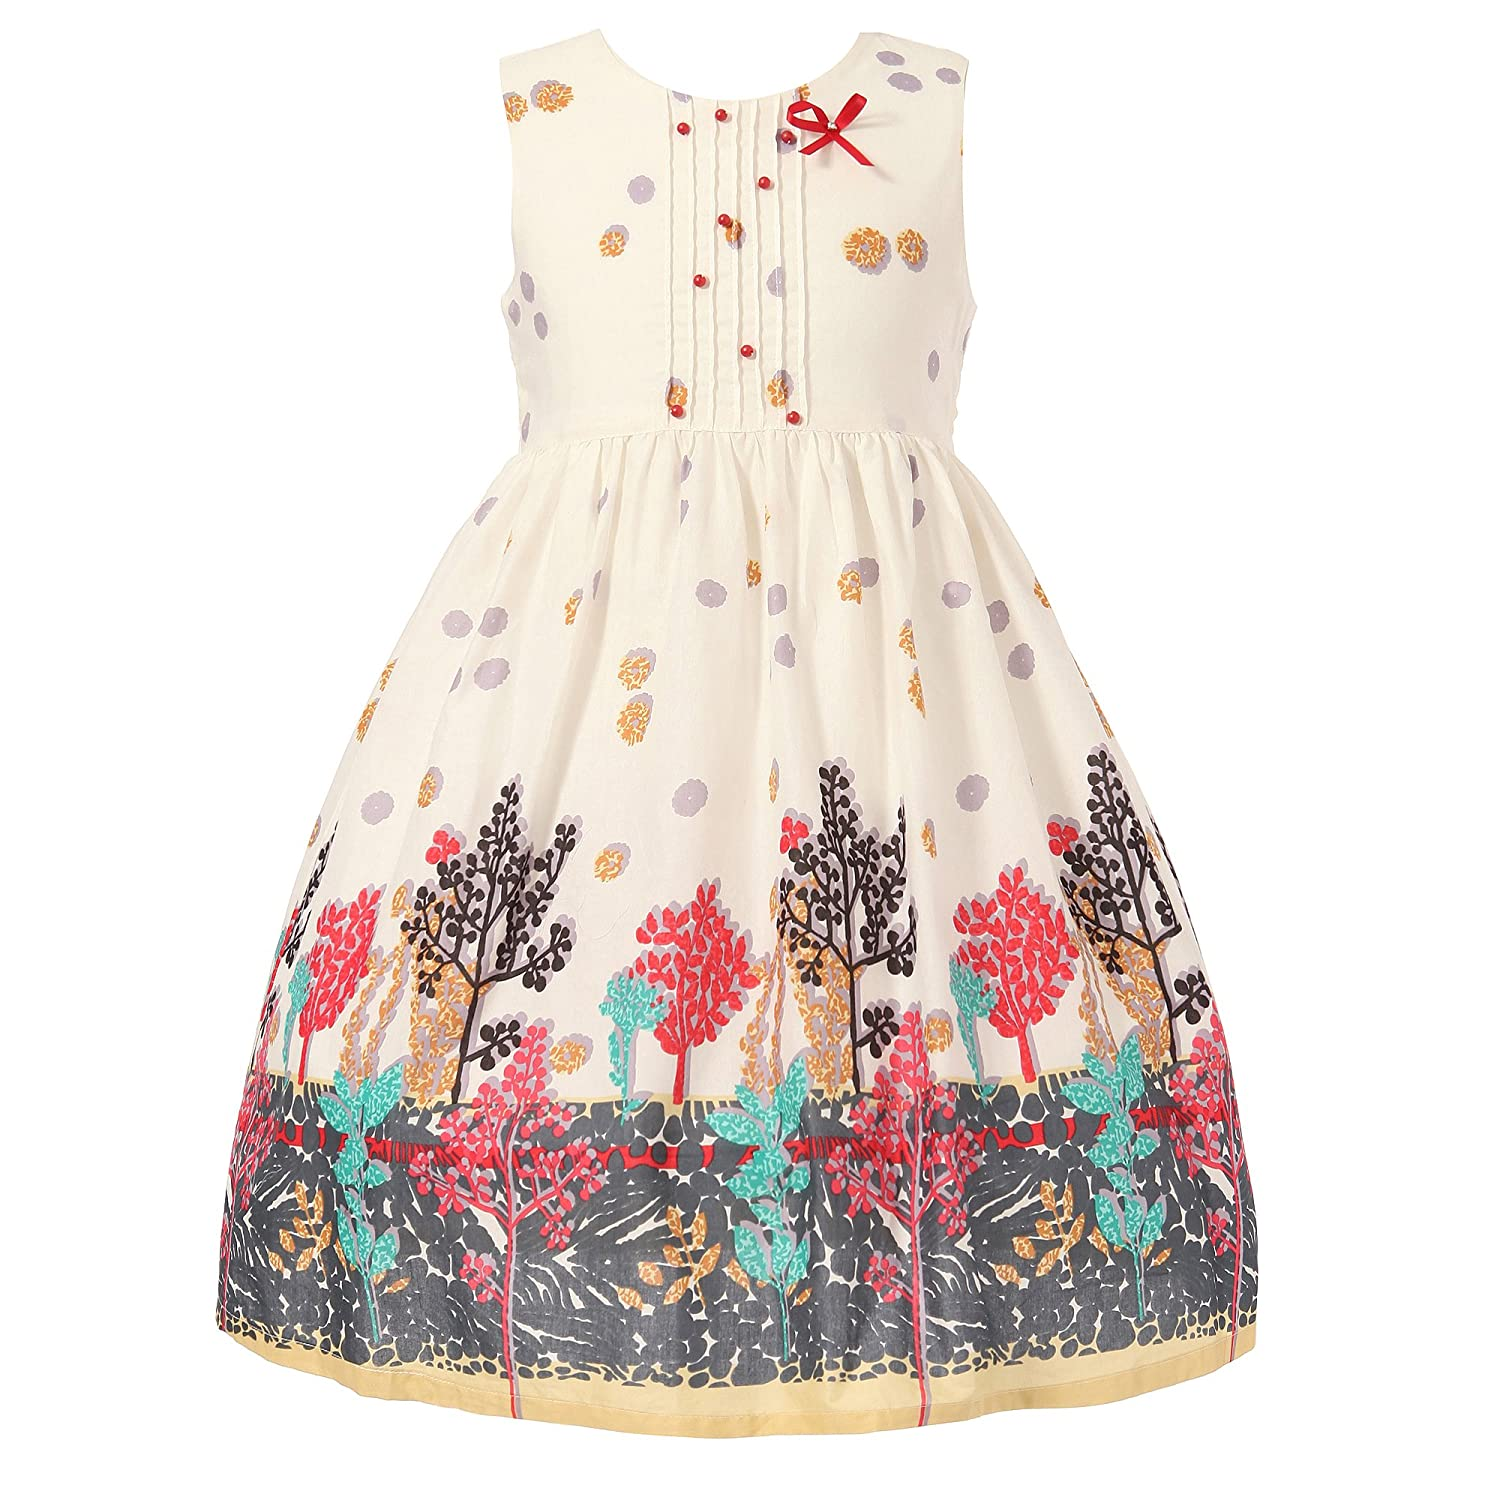 Richie House Girls' White Pleated Forest Printed Dress 2-10 RH0952 Richie House Girls' White Pleated Forest Printed Dress 2-10 RH0952